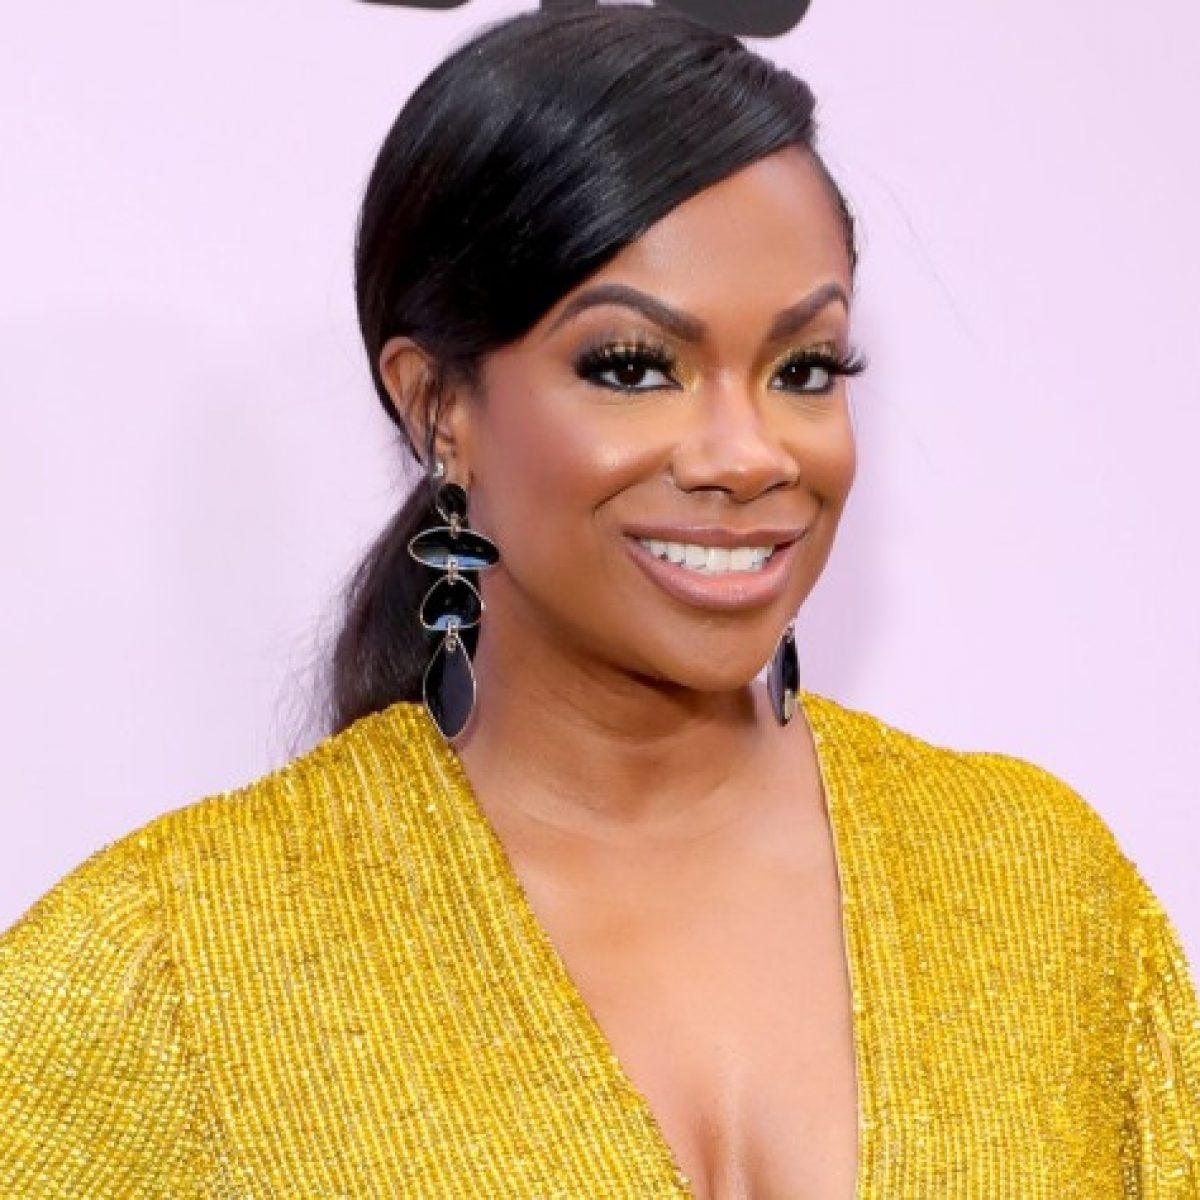 Kandi Burruss Might Go For The Big Chop